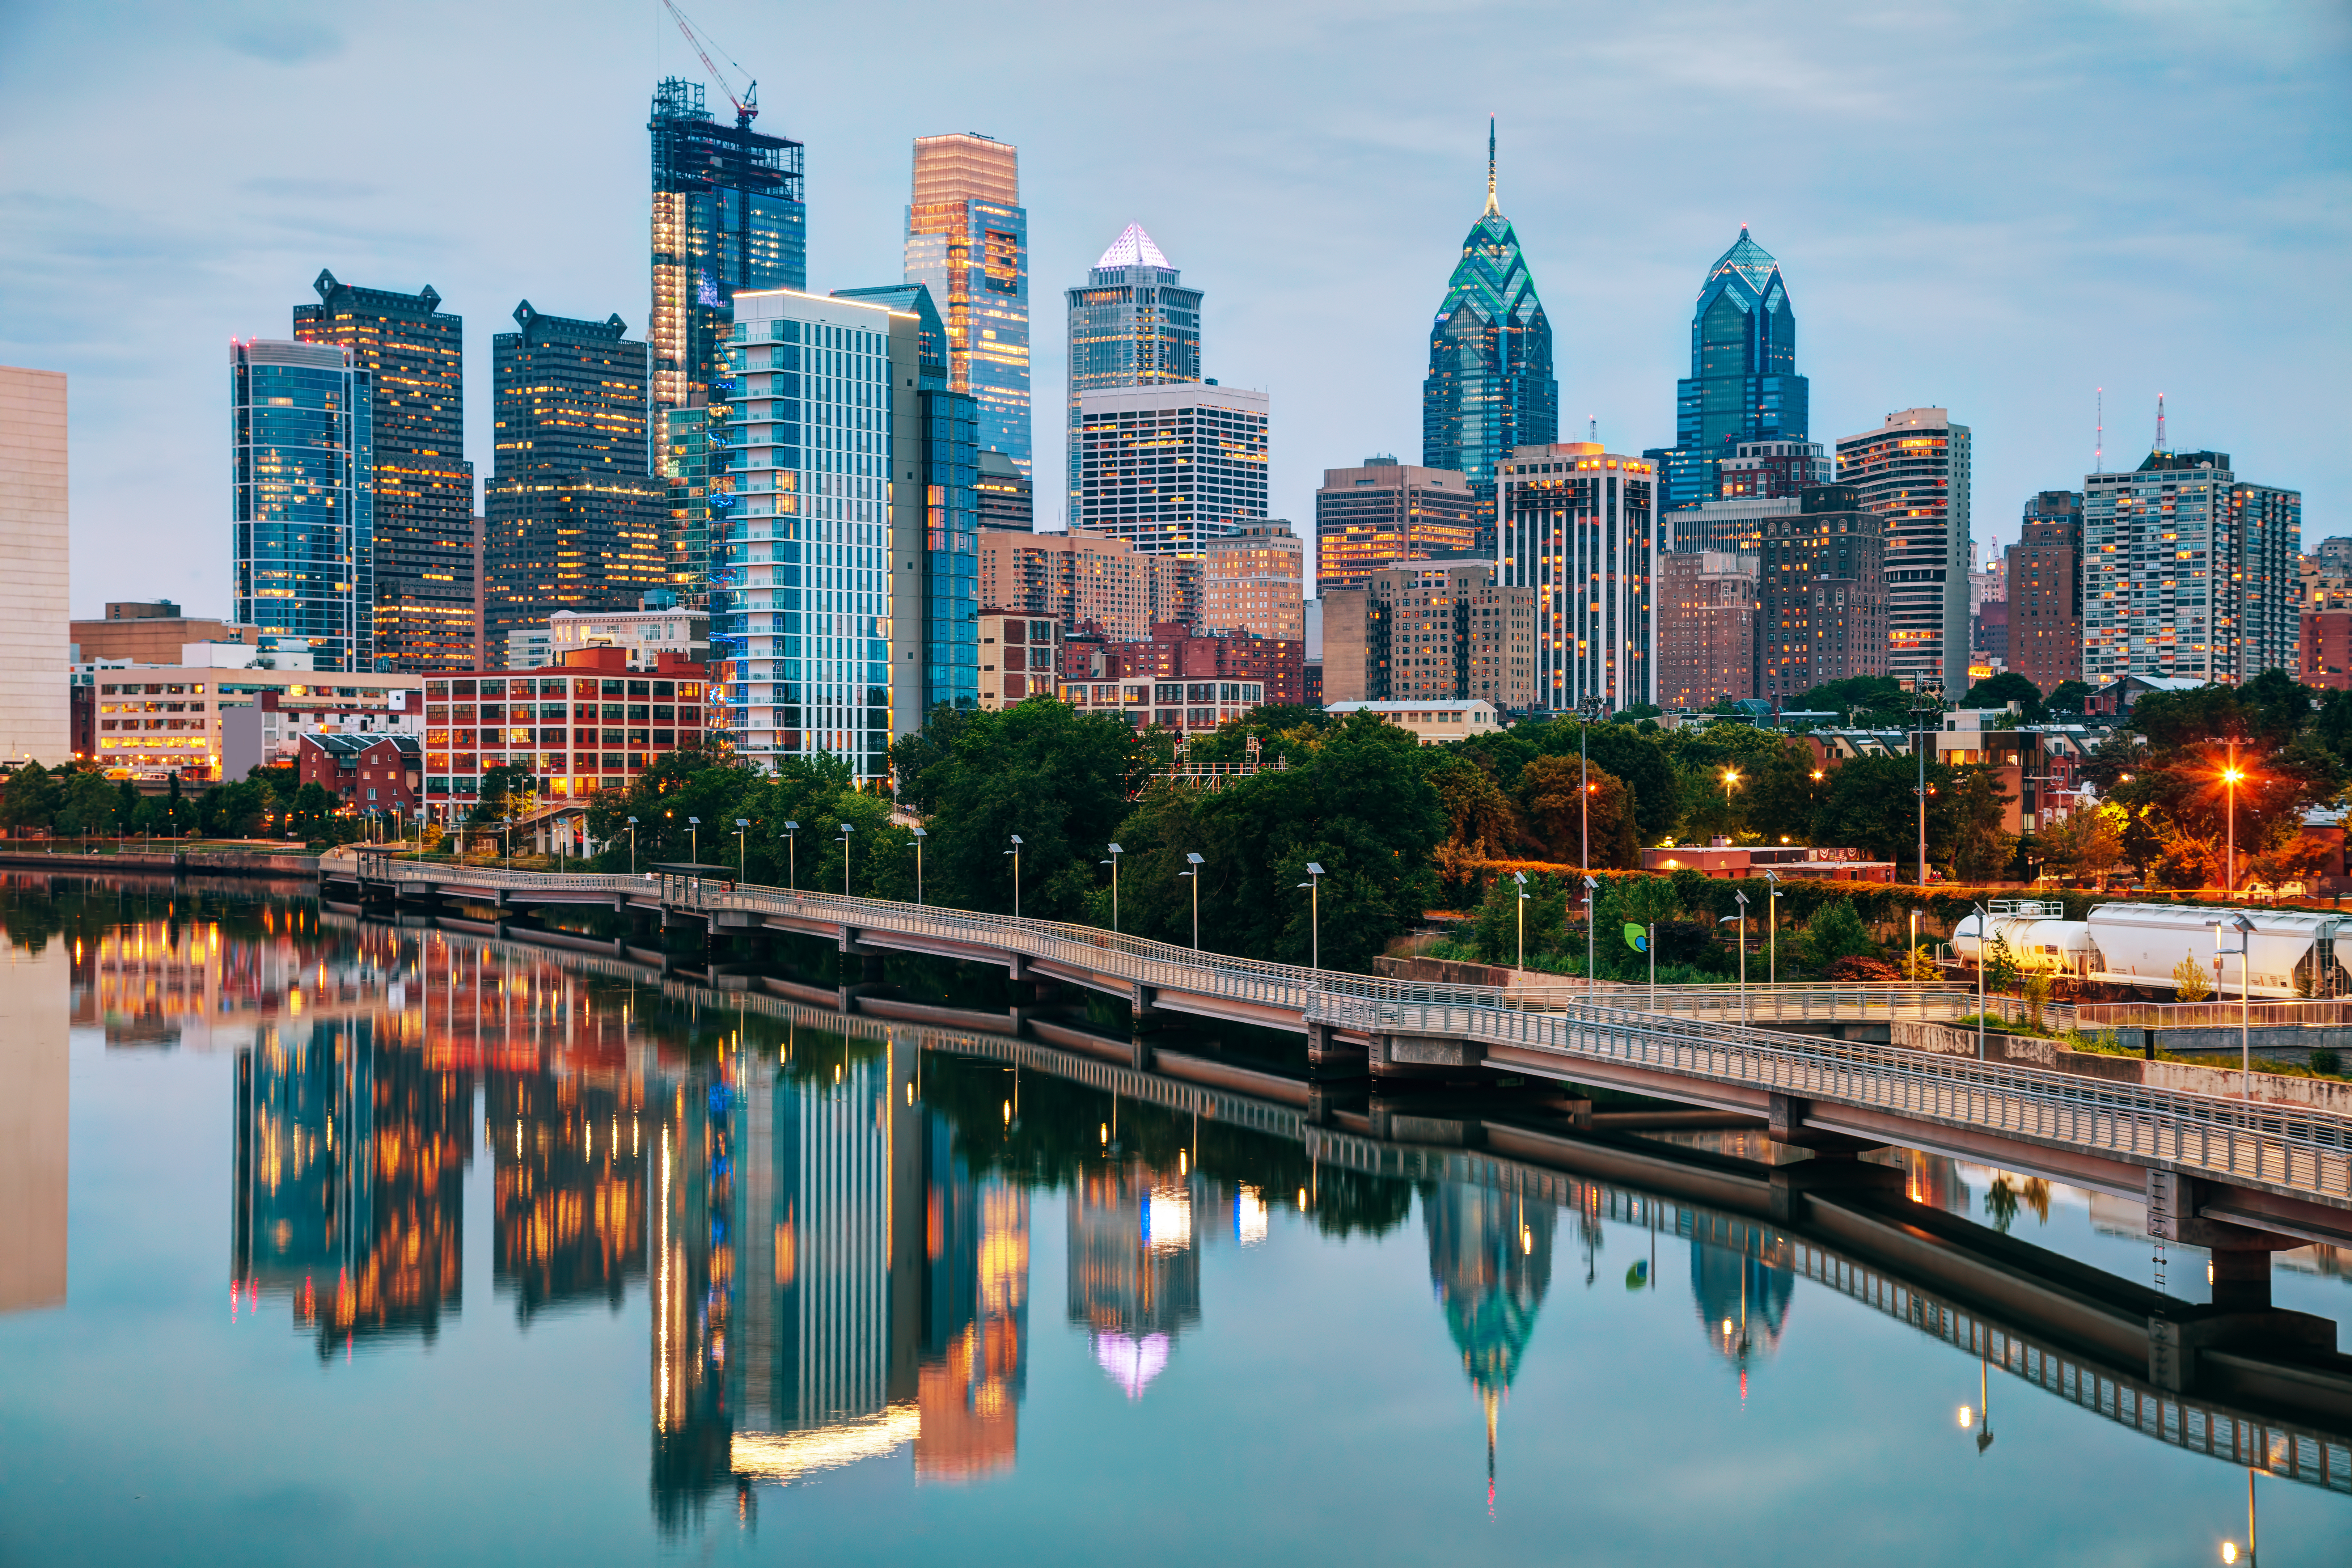 Philadelphia skyline at night with the Schuylkill River. SHUTTERSTOCK/ photo.ua